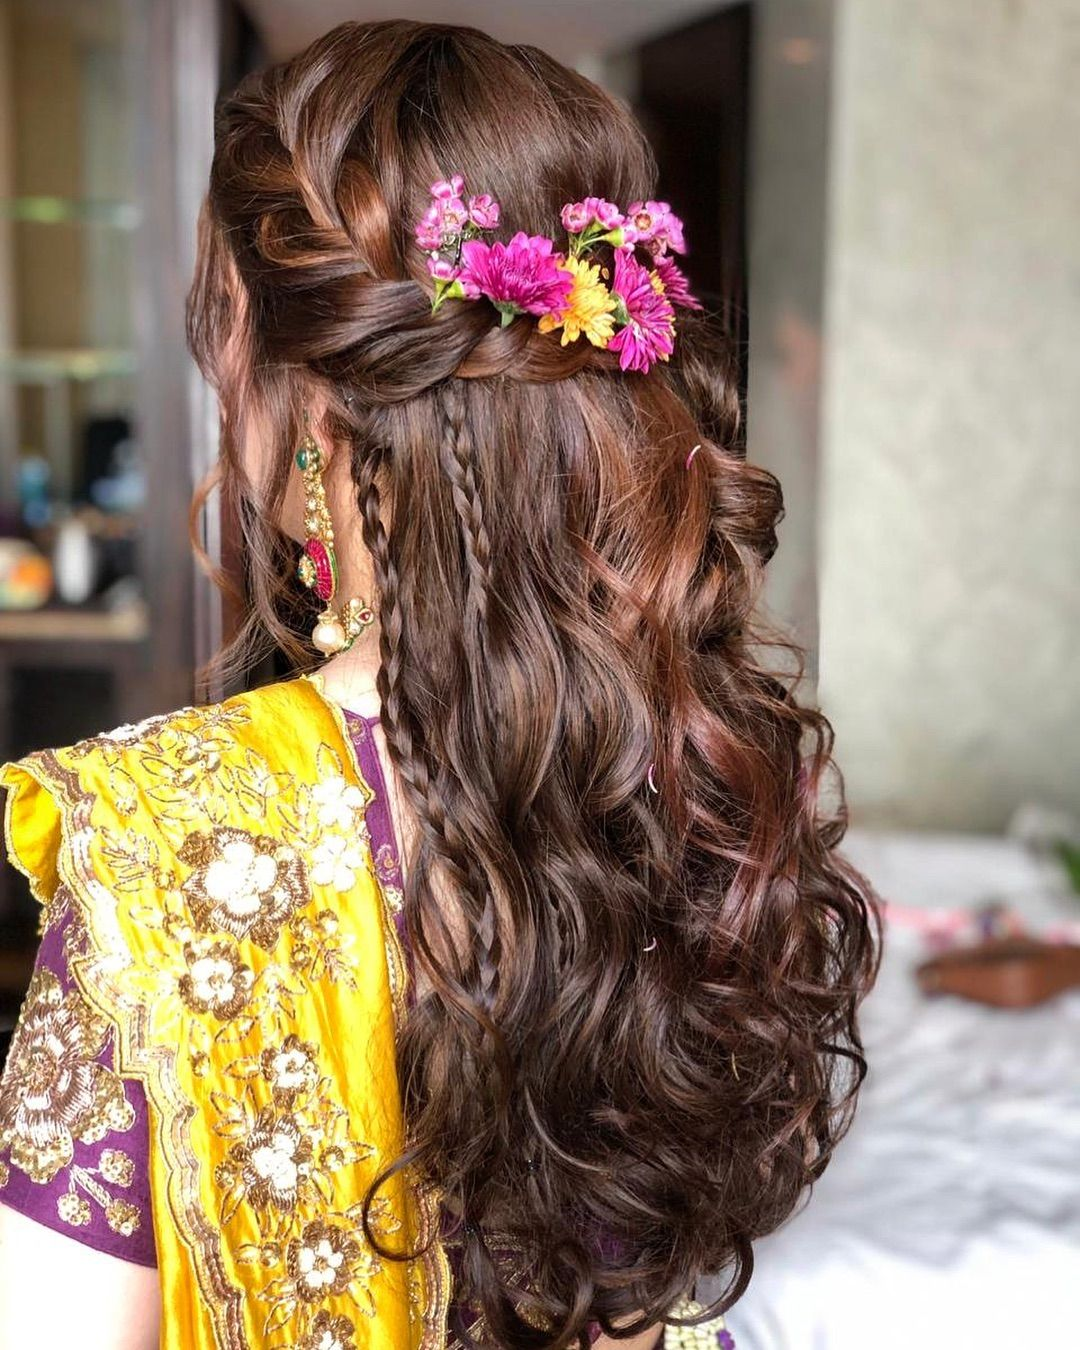 25 Pre Wedding Hairstyles For Mehndi Haldi Or More Functions Engagement Hairstyles Unique Wedding Hairstyles Mehndi Hairstyles